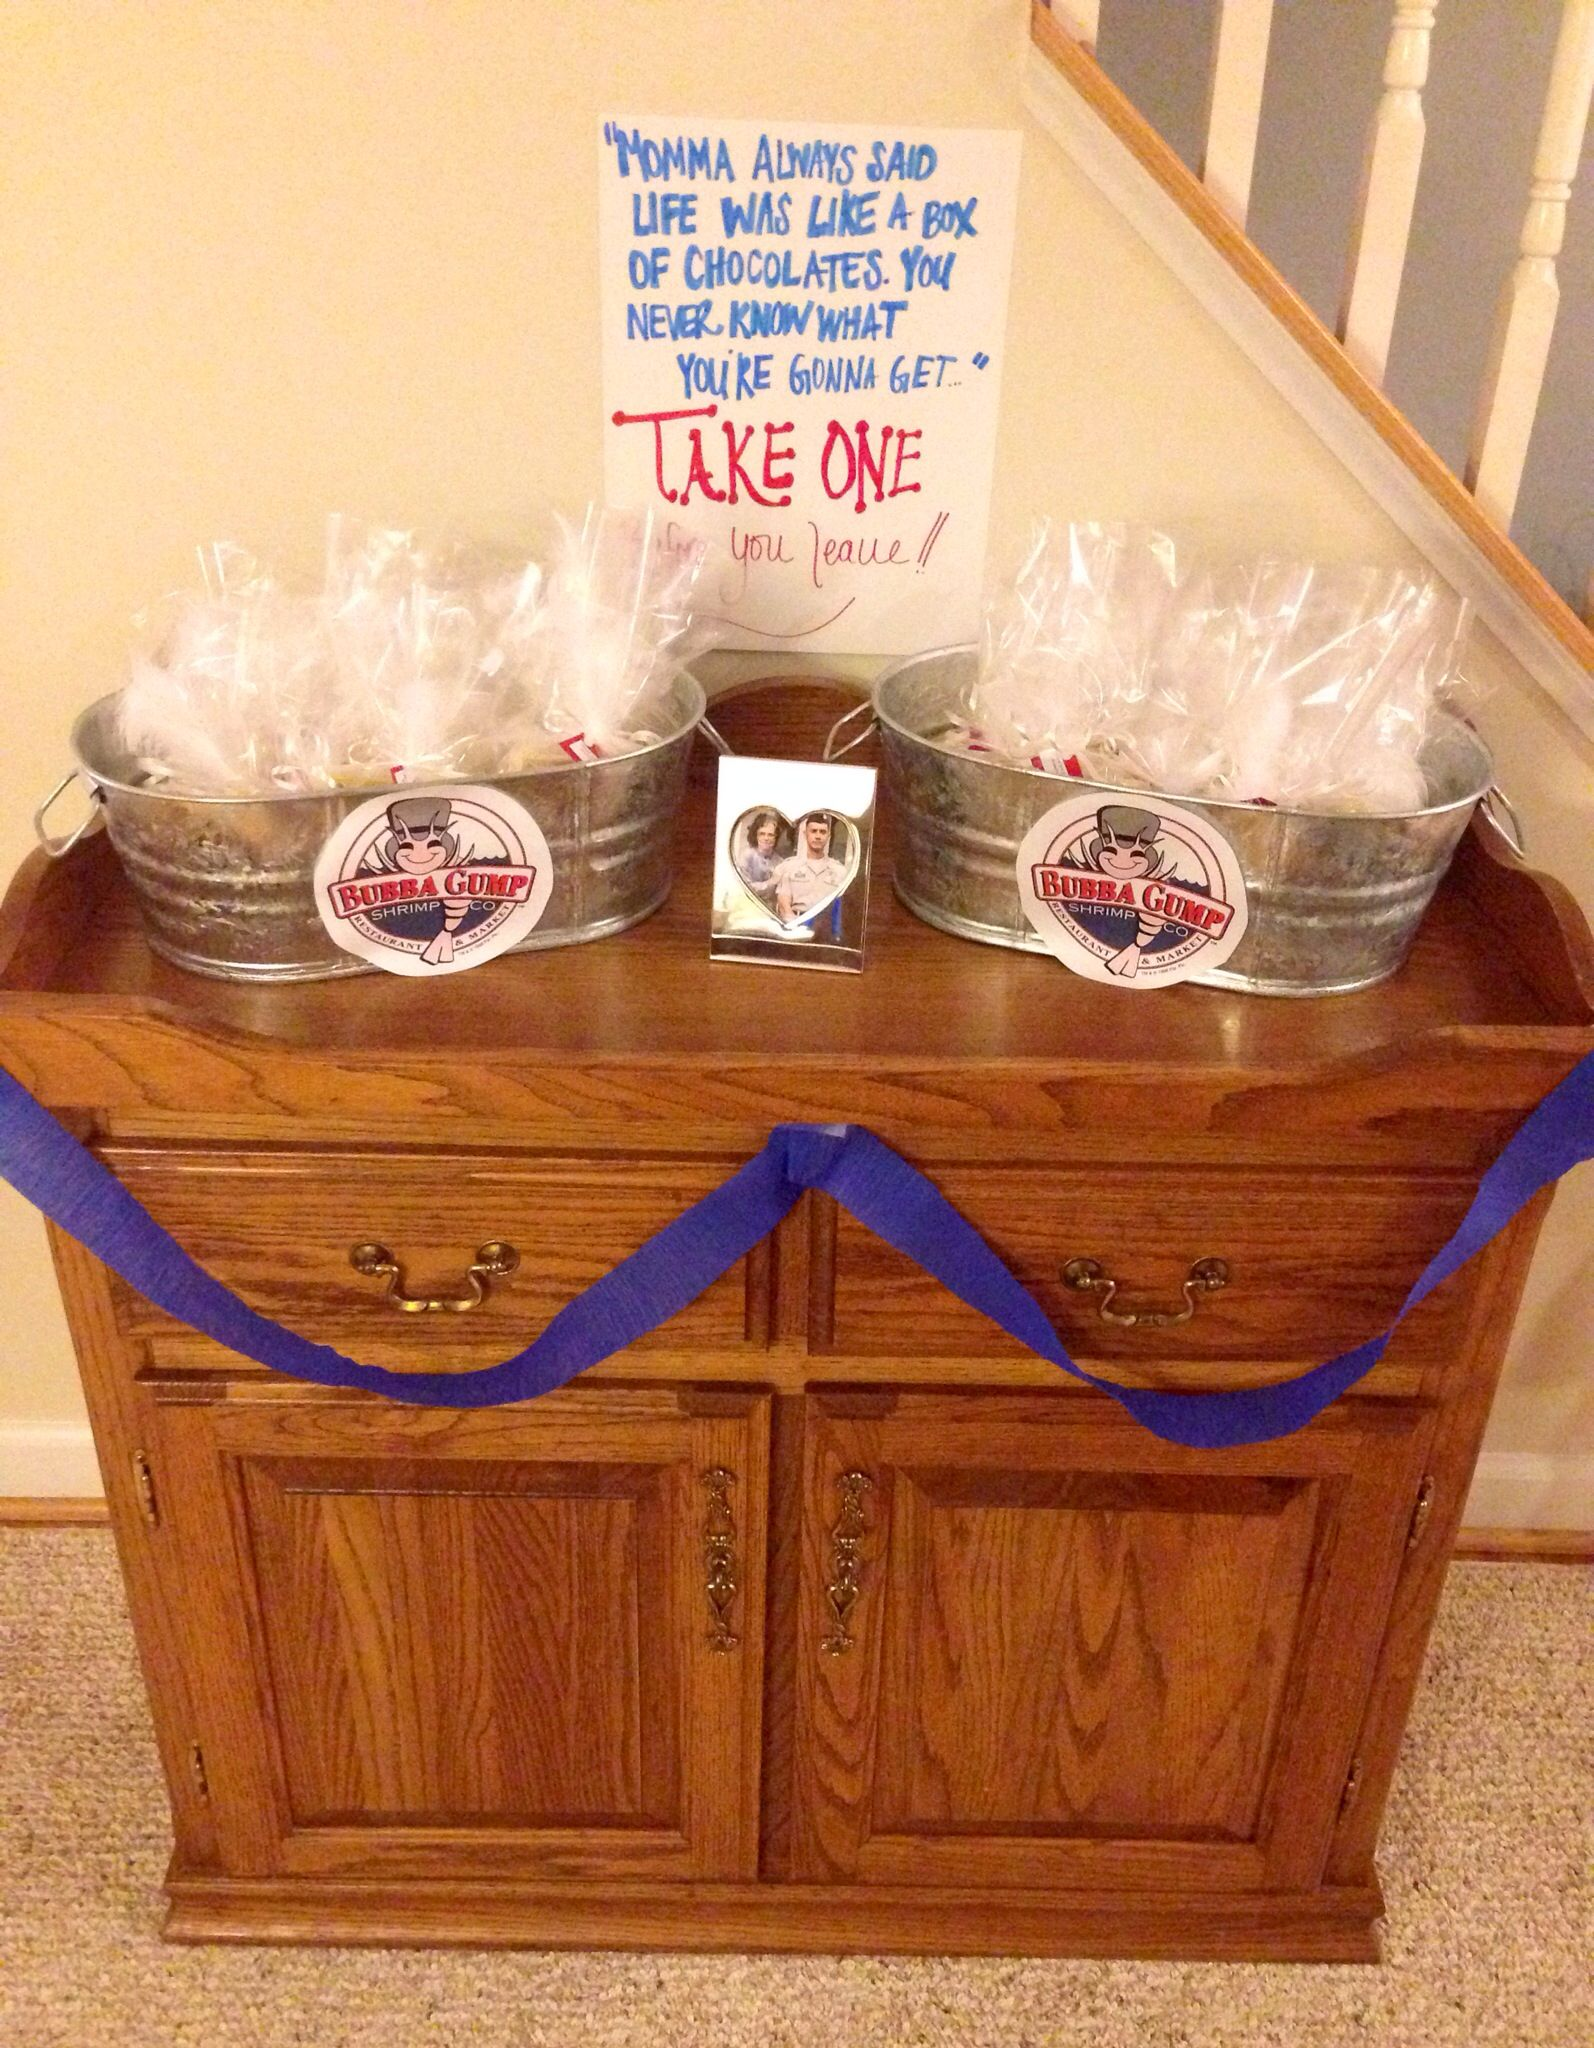 Forrest Gump Birthday Party Favors These Were Such A Hit